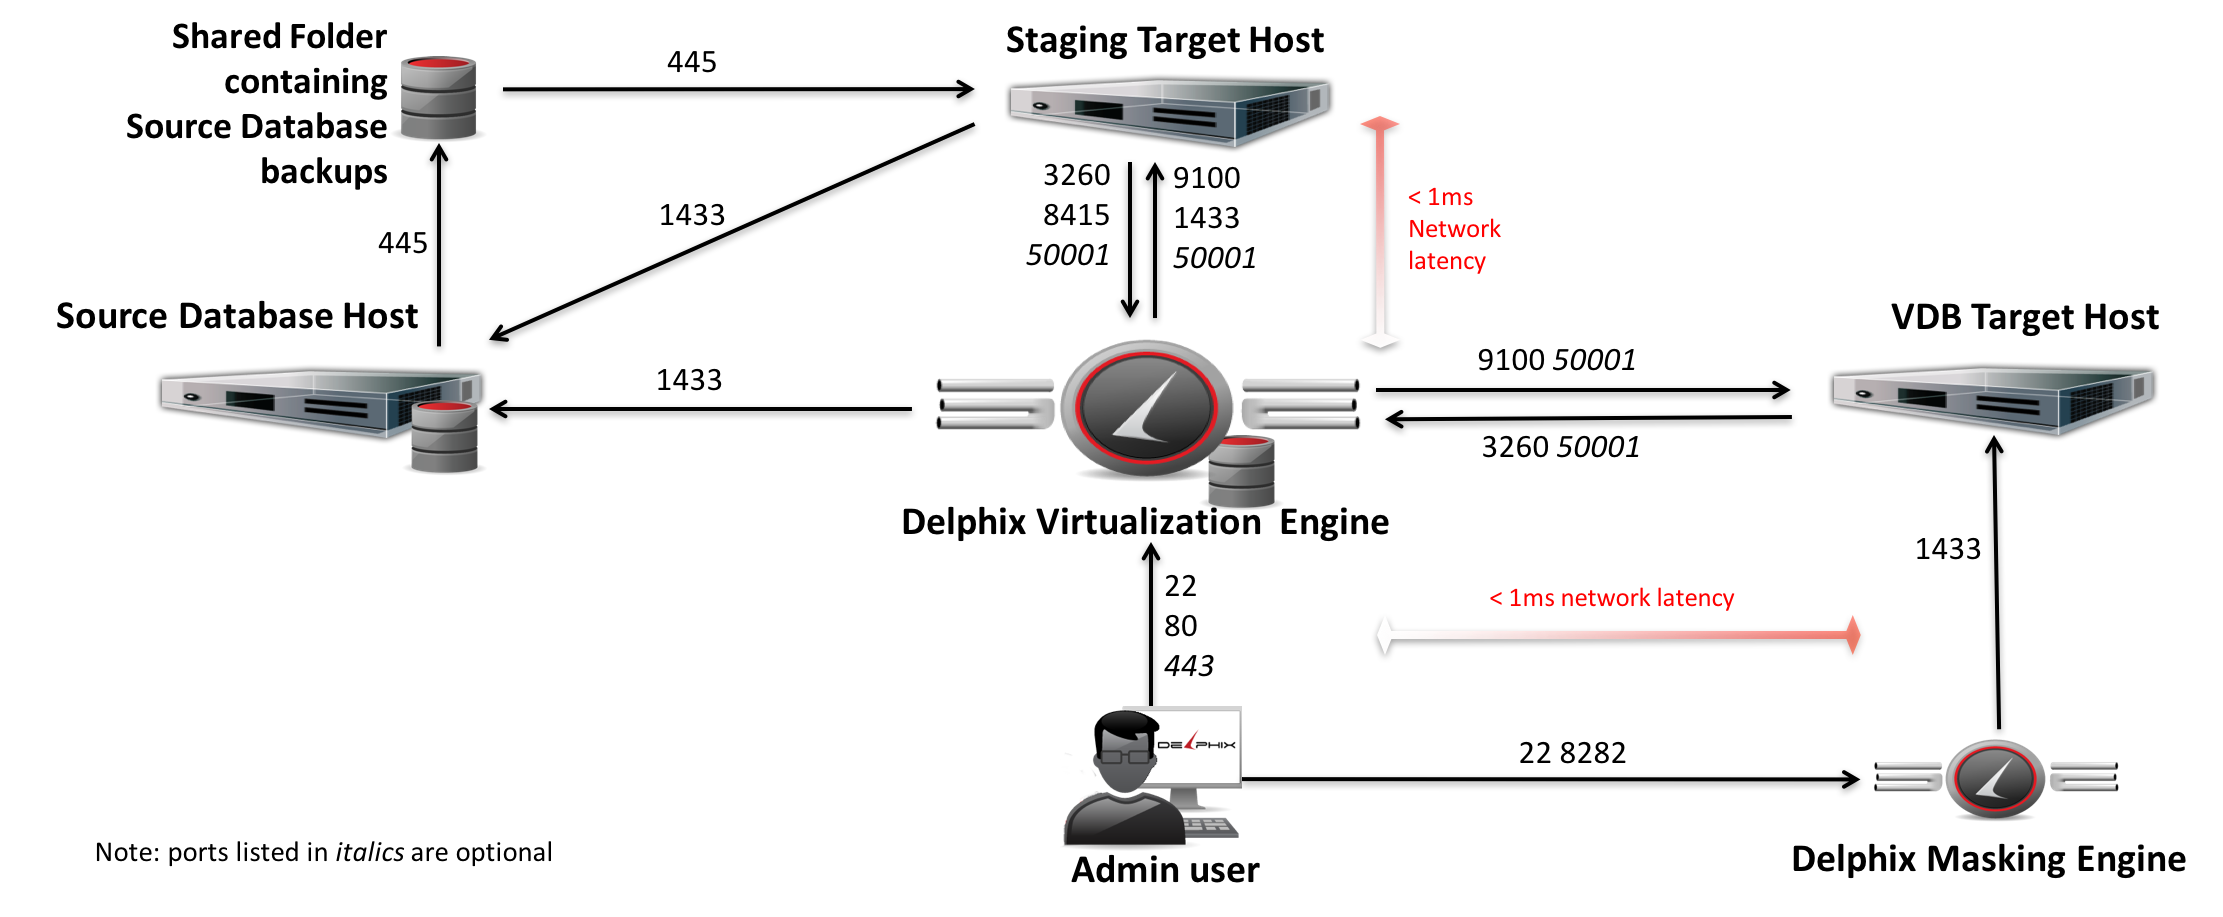 Network access requirements for sql server ports ccuart Choice Image